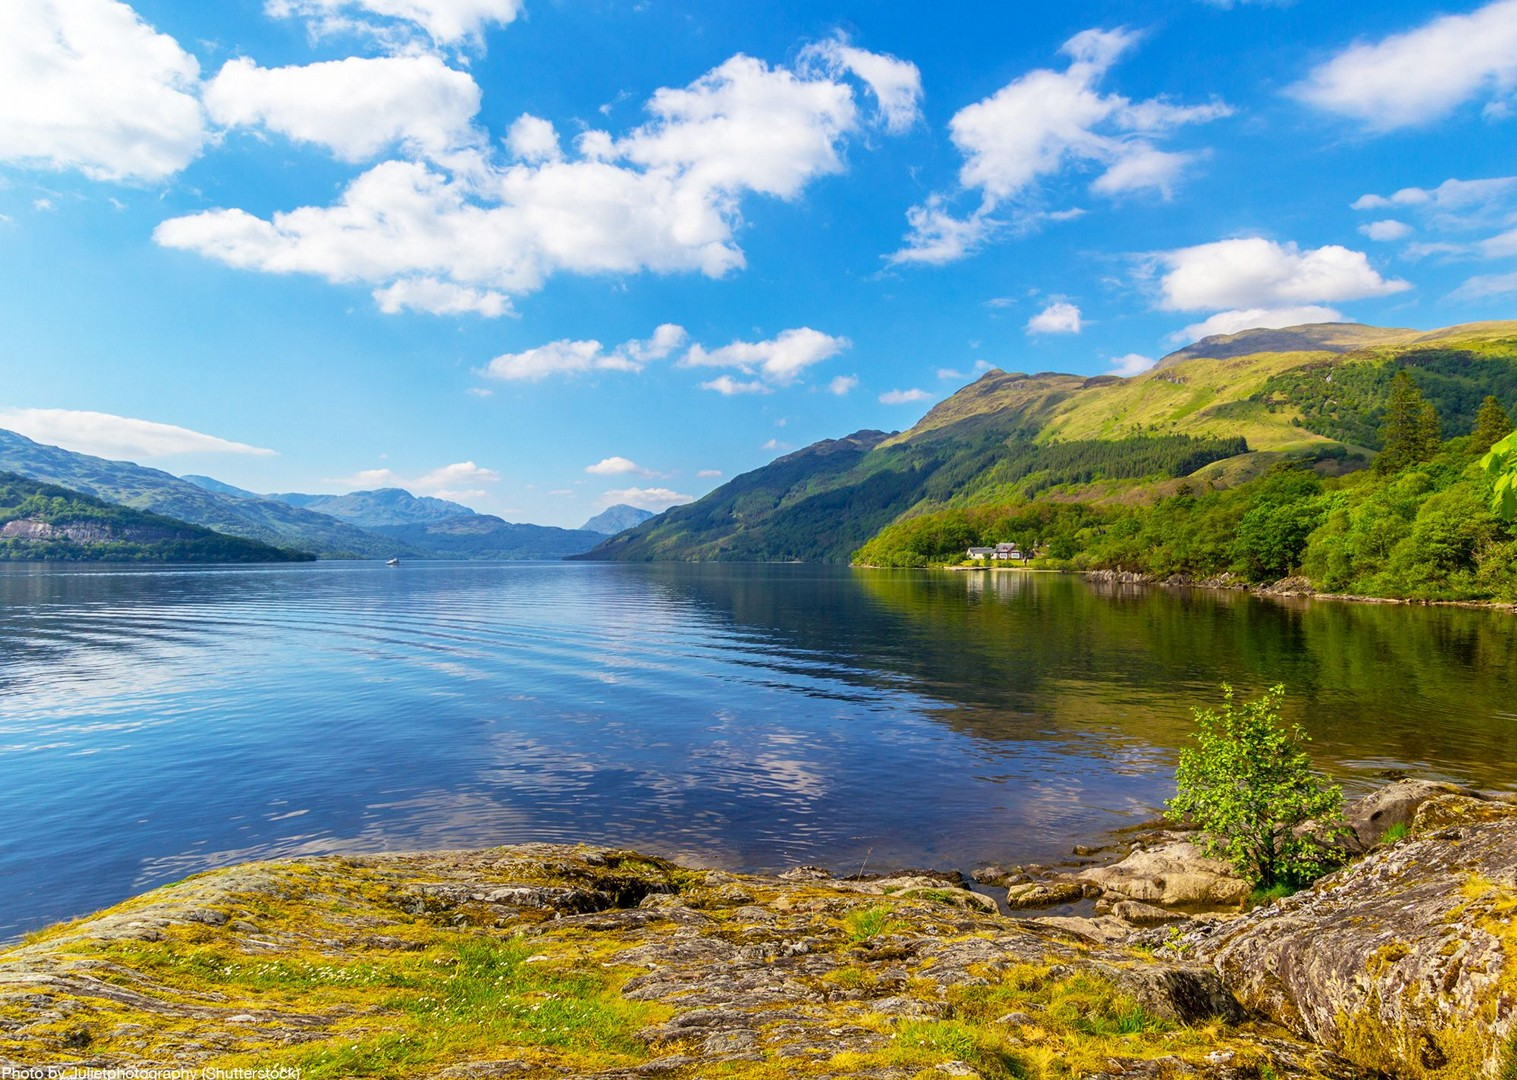 loch-lomond-scotland-uk-cycling-holiday-fun-lake.jpg - UK - Scotland - Lochs and Glens - Self-Guided Leisure Cycling Holiday - Leisure Cycling